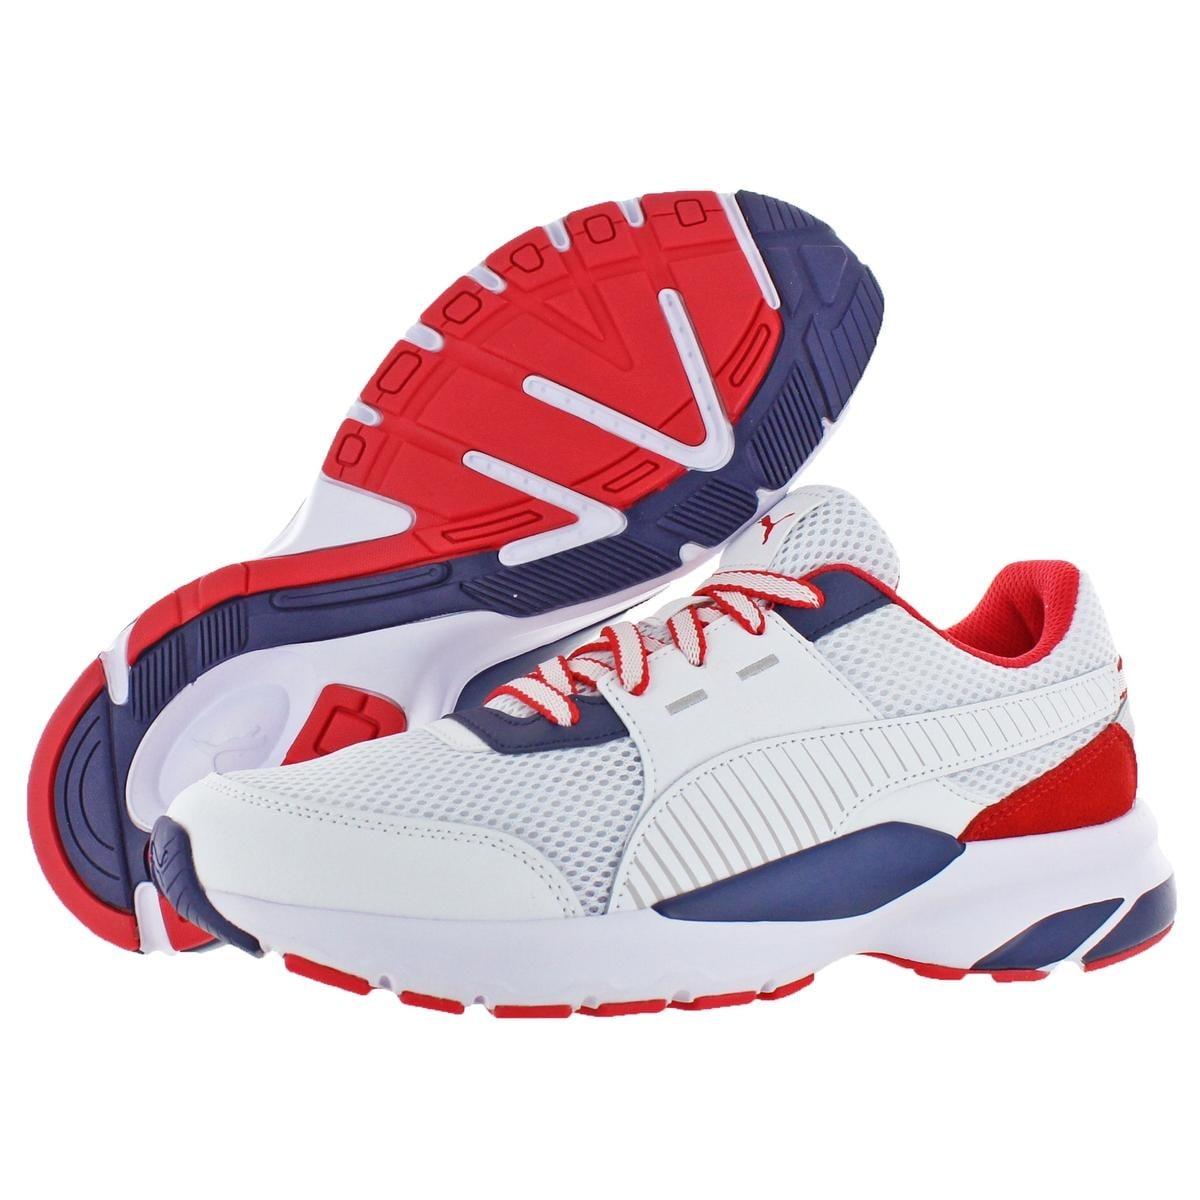 ea91fe8240081f Shop Puma Mens Future Runner Premium Athletic Shoes SoftFoam Athleisure -  Free Shipping Today - Overstock - 27102859